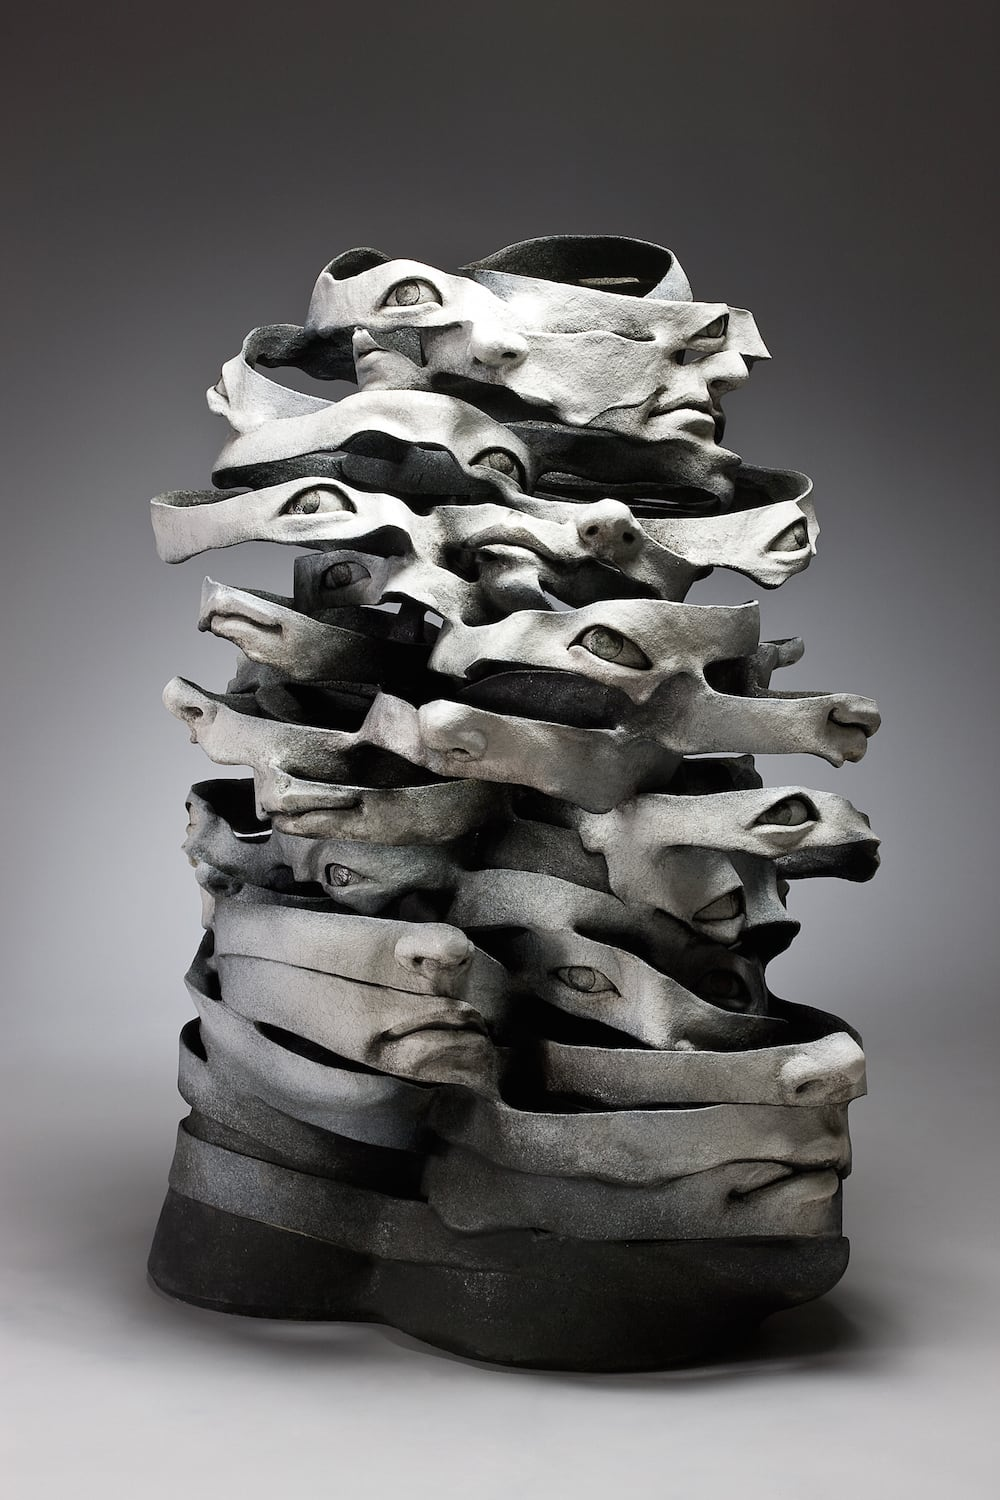 LeeHaejin Memoirs of Imageries and Emotions L80xD55xH105cm 2011 - Artist Creates Ceramic Sculptures That Unwind Before Your Eyes